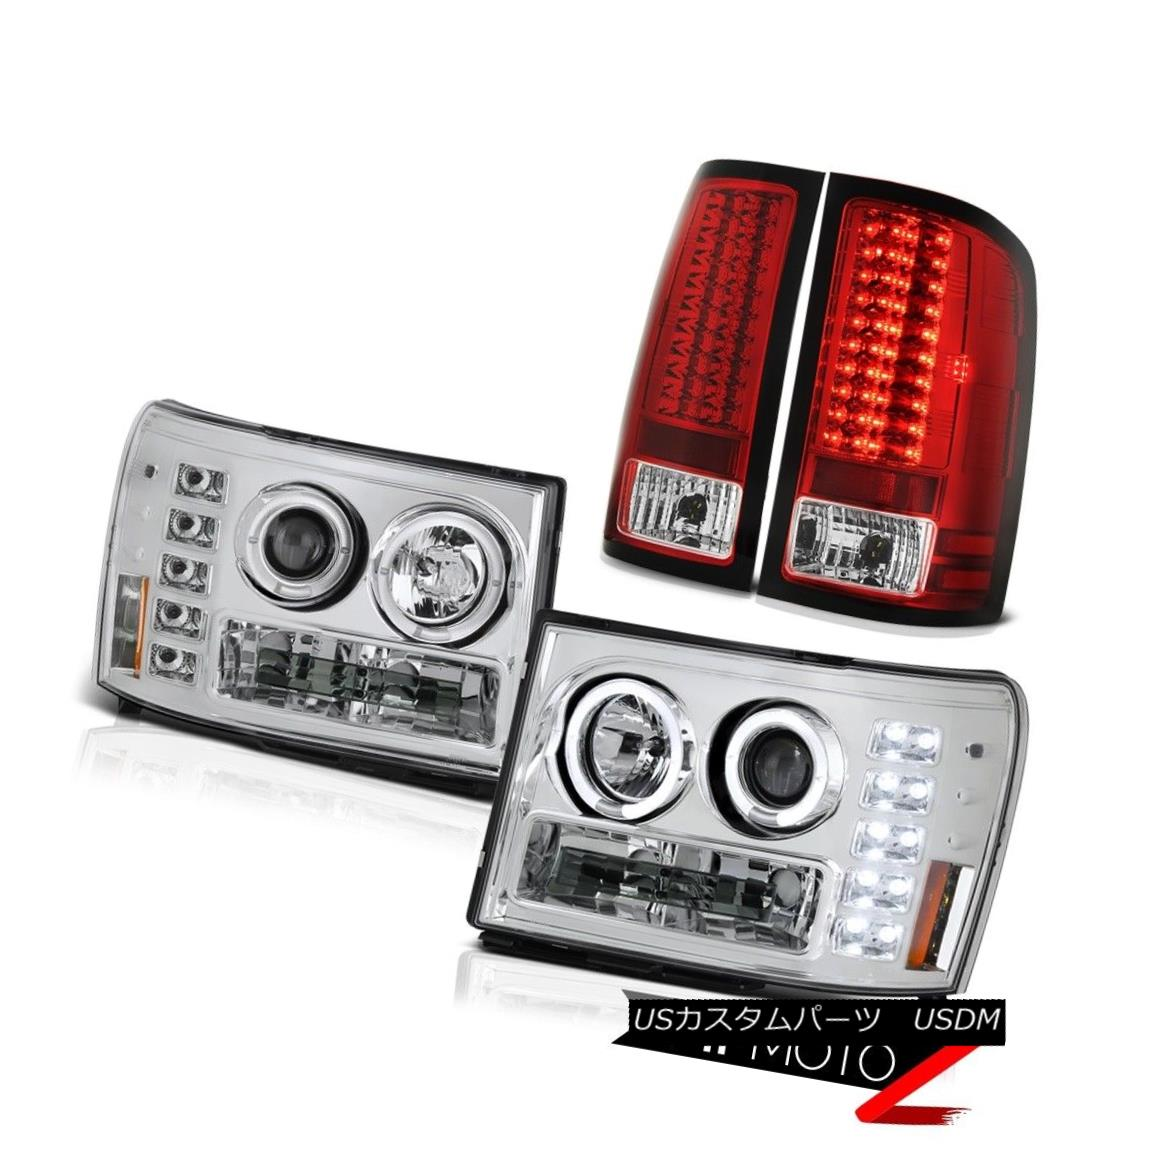 テールライト 2007-2013 GMC Sierra 6.0L WT Euro Halo LED Projector Headlight Taillamps Chrome 2007-2013 GMC Sierra 6.0L WTユーロHalo LEDプロジェクターヘッドライトトライアングルクローム